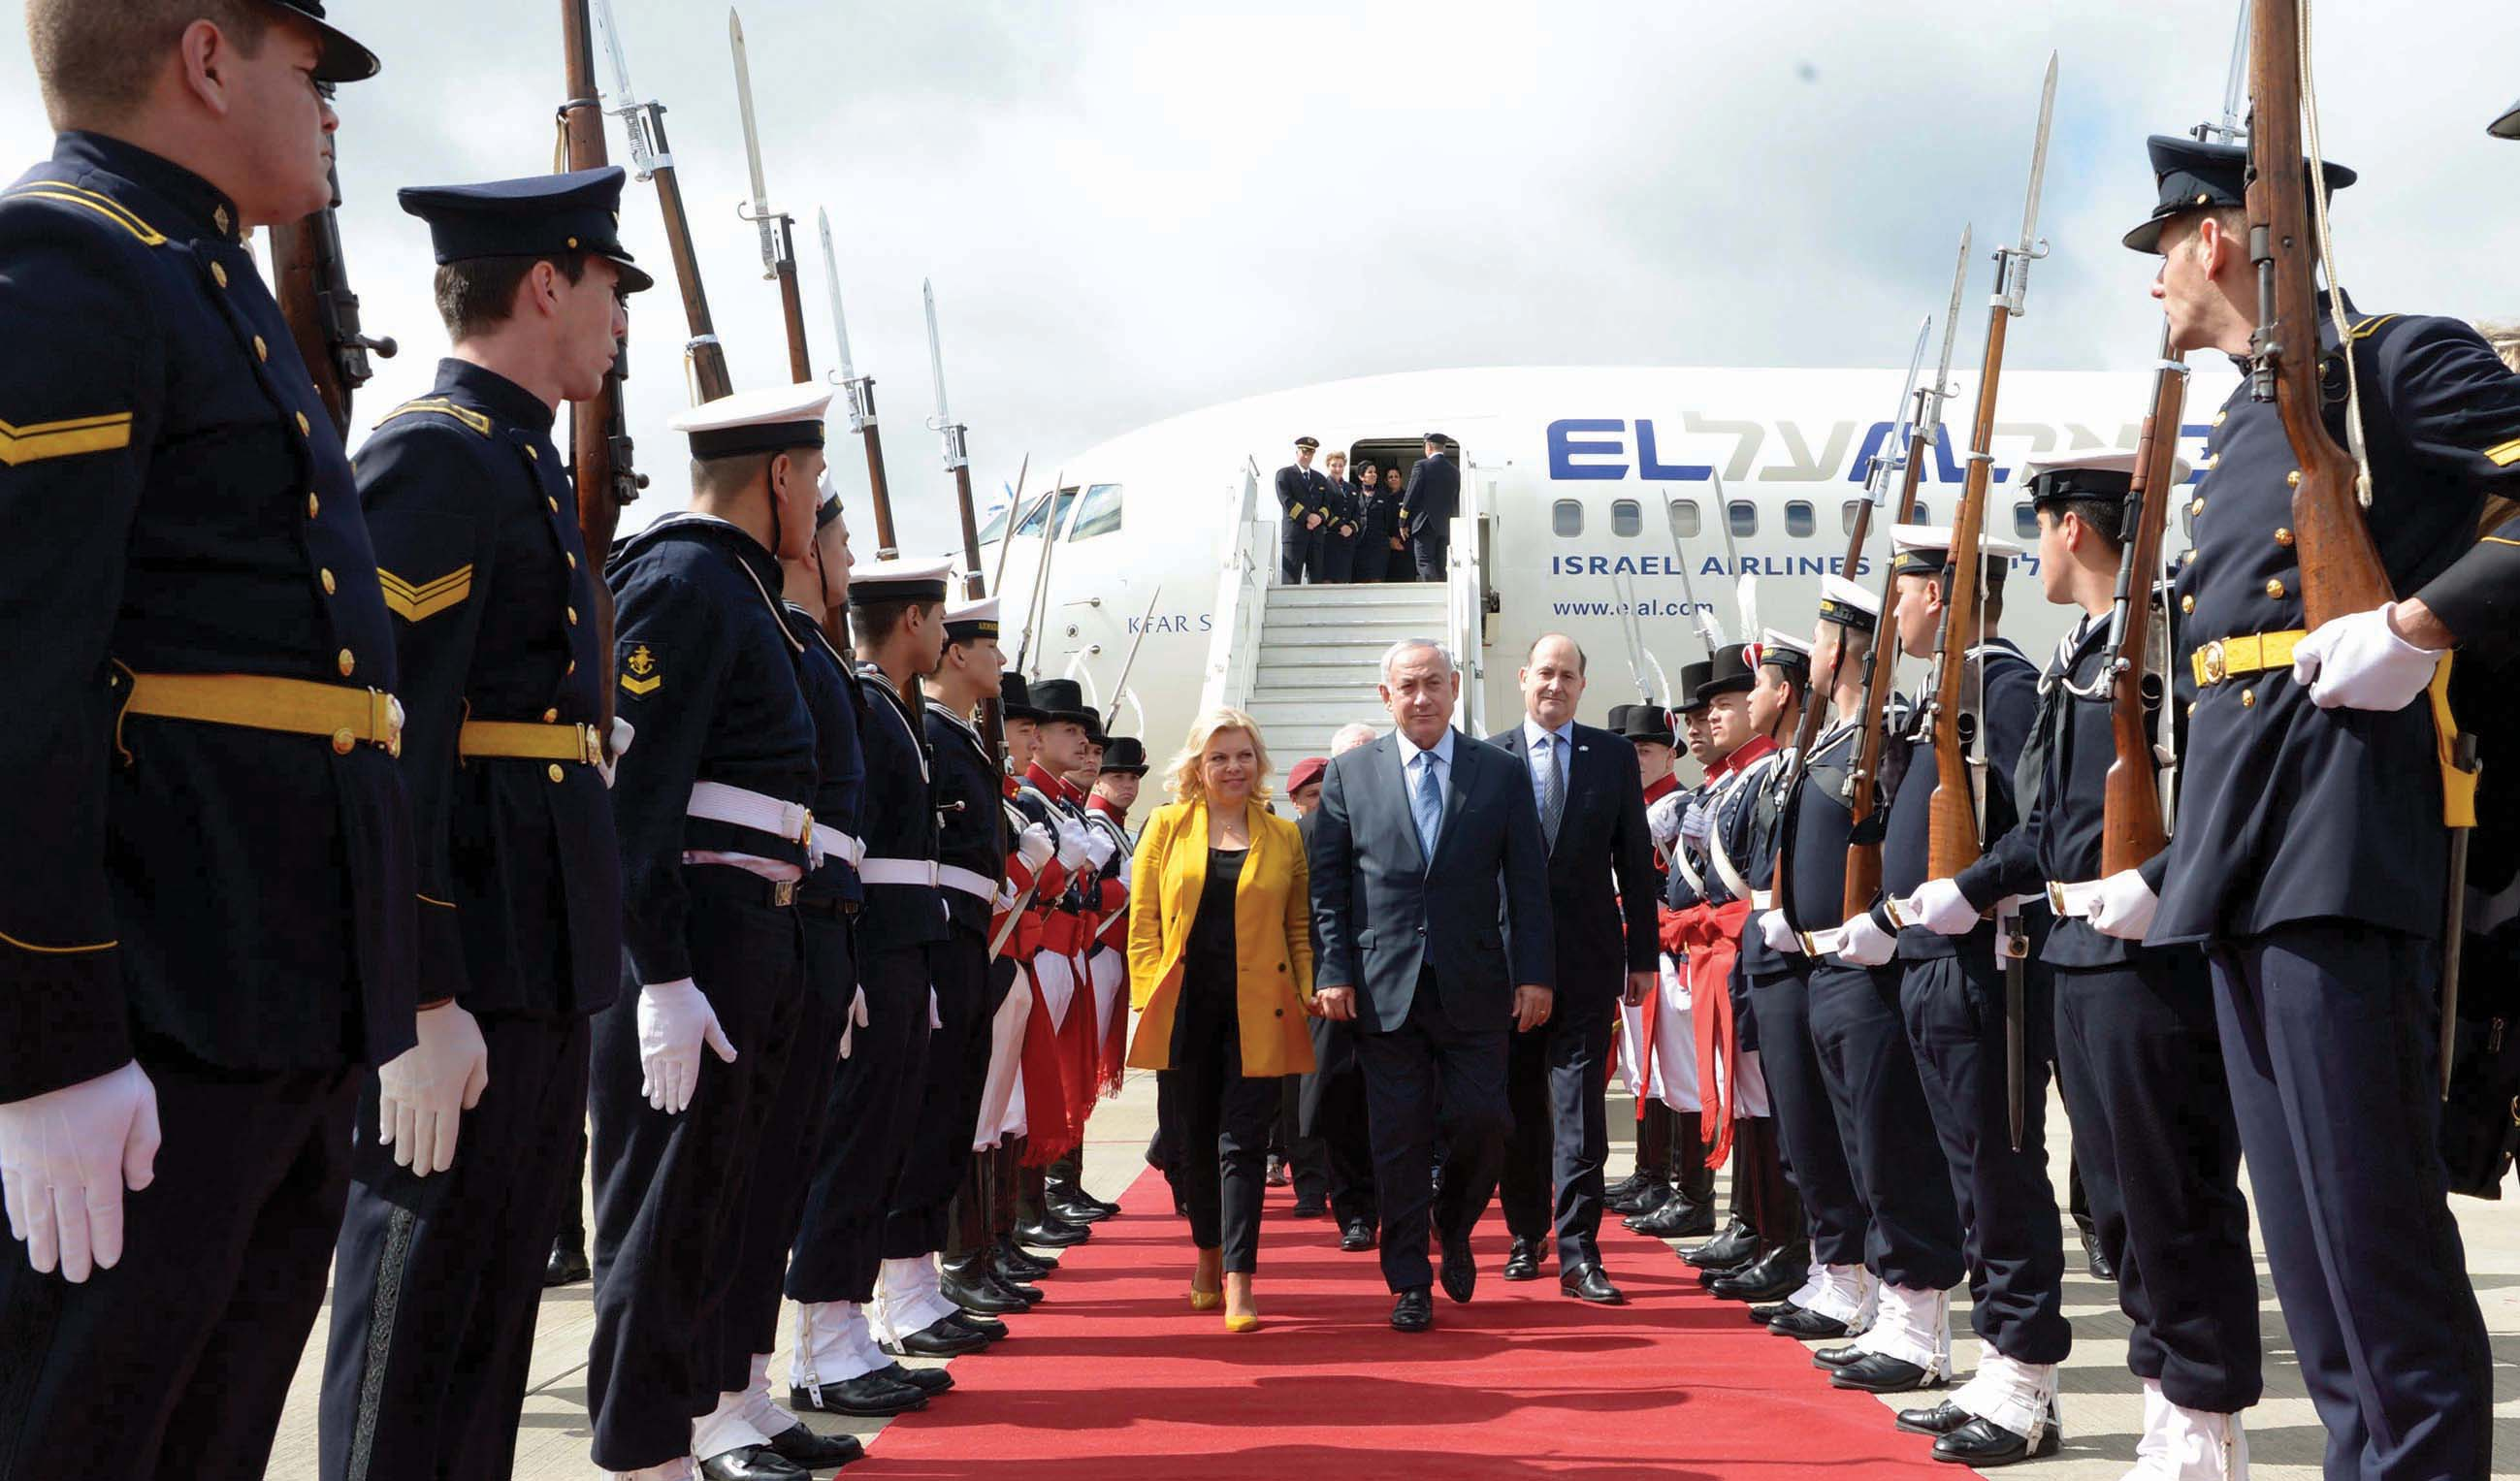 Israeli Prime Minister Benjamin Netanyahu and his wife Sara arrive to Buenos Aires, Argentina, on September 11, 2017, Israeli Prime Minister Benjamin Netanyahu is on a 10 days visit to Latin America and the United states. Photo by Avi Ohayon/GPO